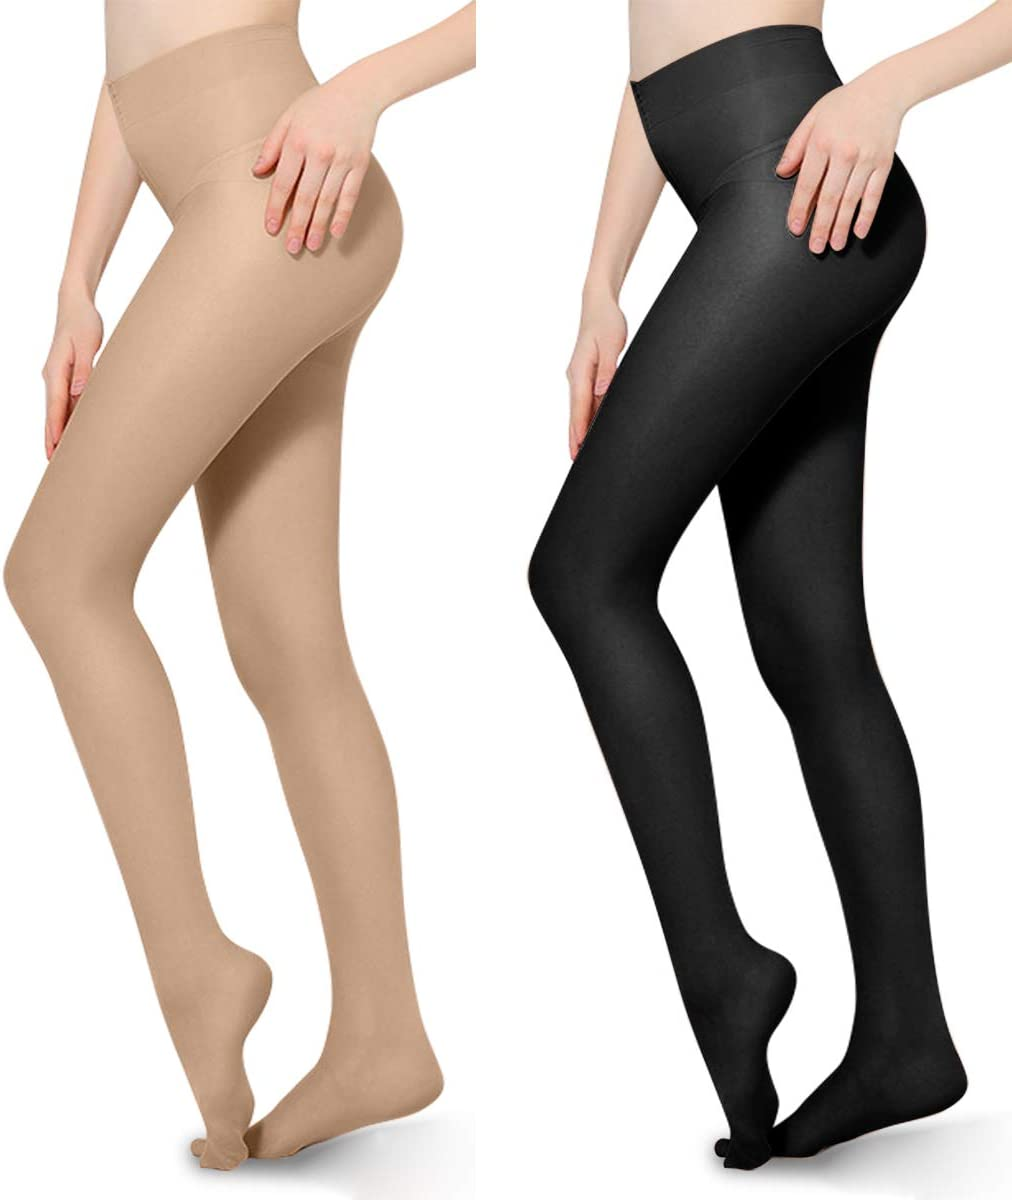 2 PCS 20-30mmHg Compression Pantyhose Opaque Support Pantyhose Closed Toe for Women Men Help Relieve Swelling Varicose Veins Edema Black Beige XL